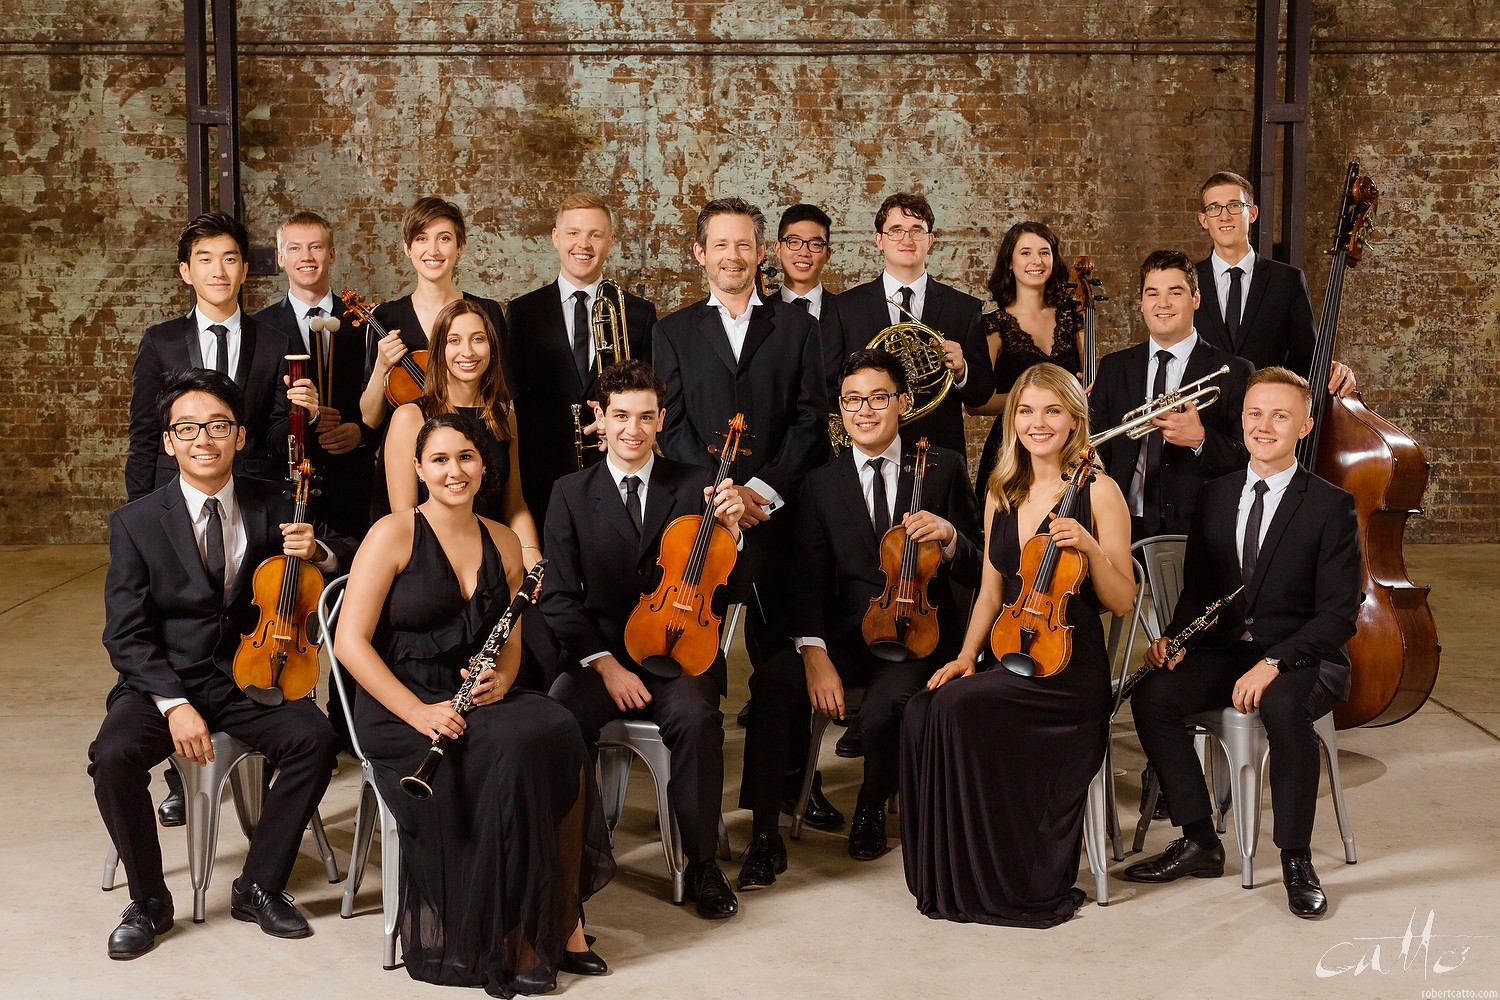 The Sydney Symphony Orchestra Fellowship for 2016